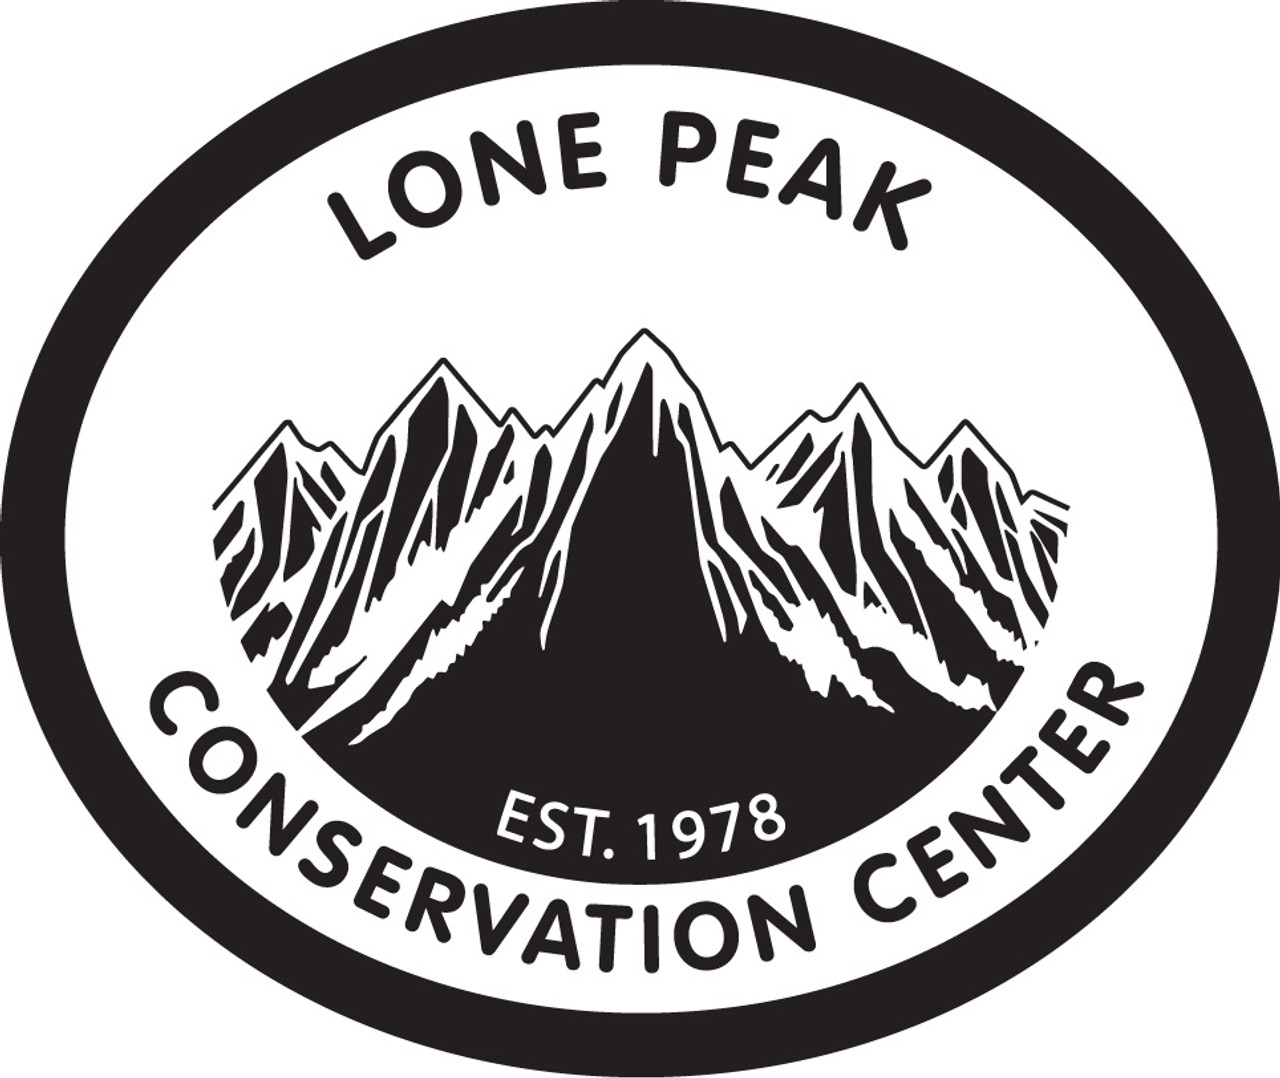 Lone Peak Conservation Center (no extra text) belt buckle